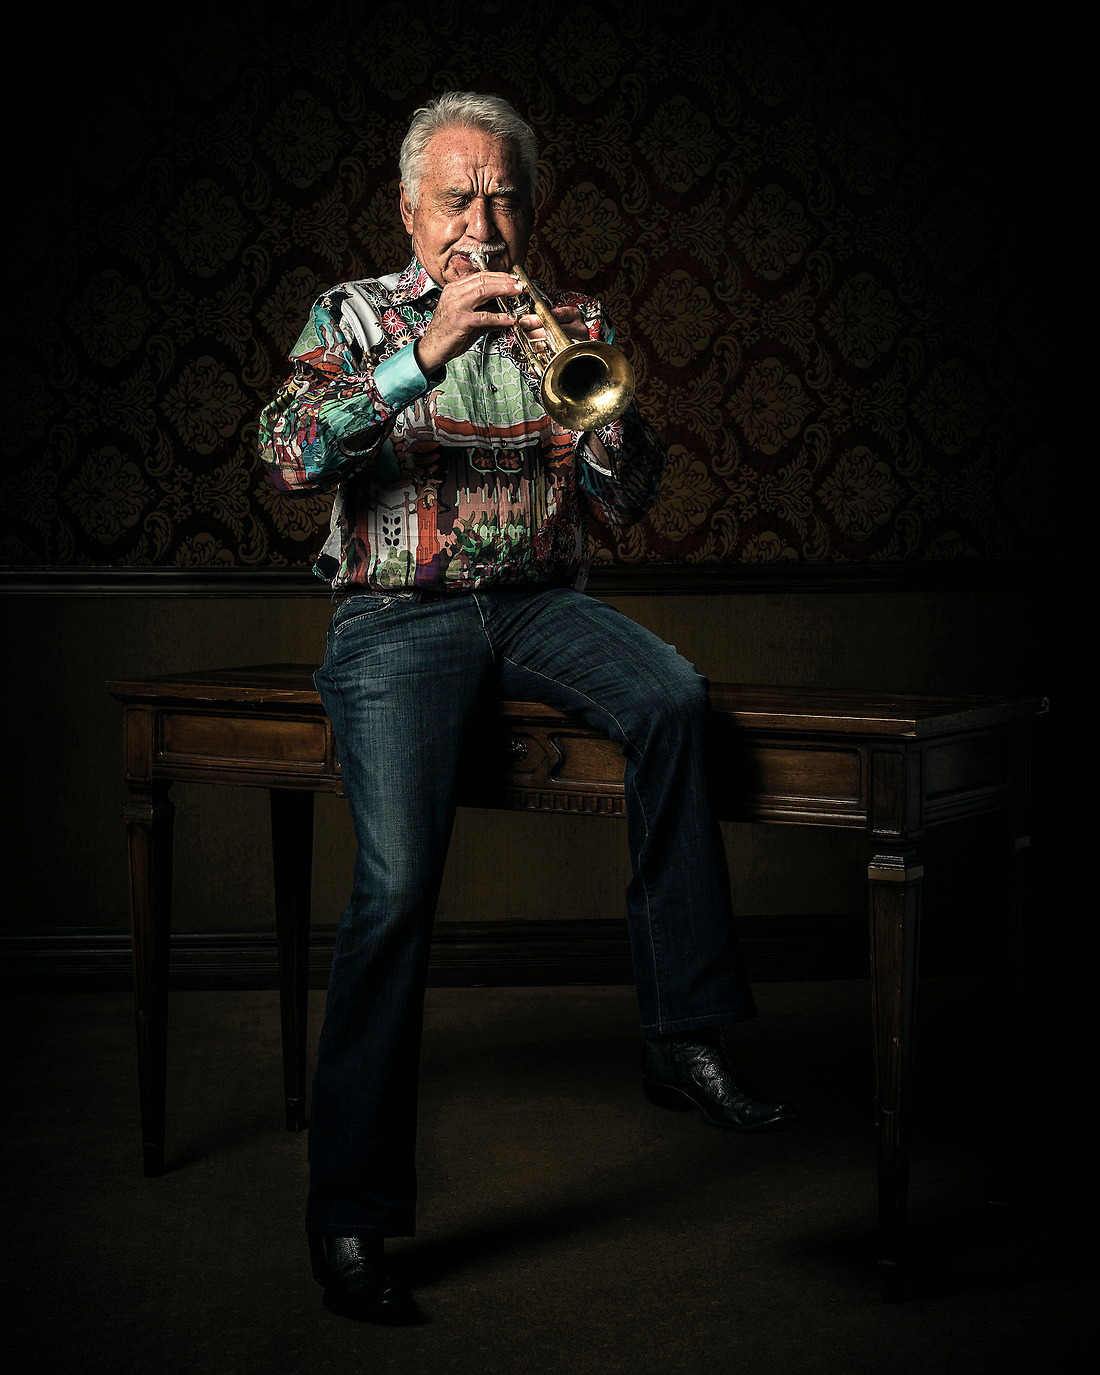 Doc Severinsen Tonight Show Band Leader and Legendary Jazz Artist. — © Jeremy Lock/